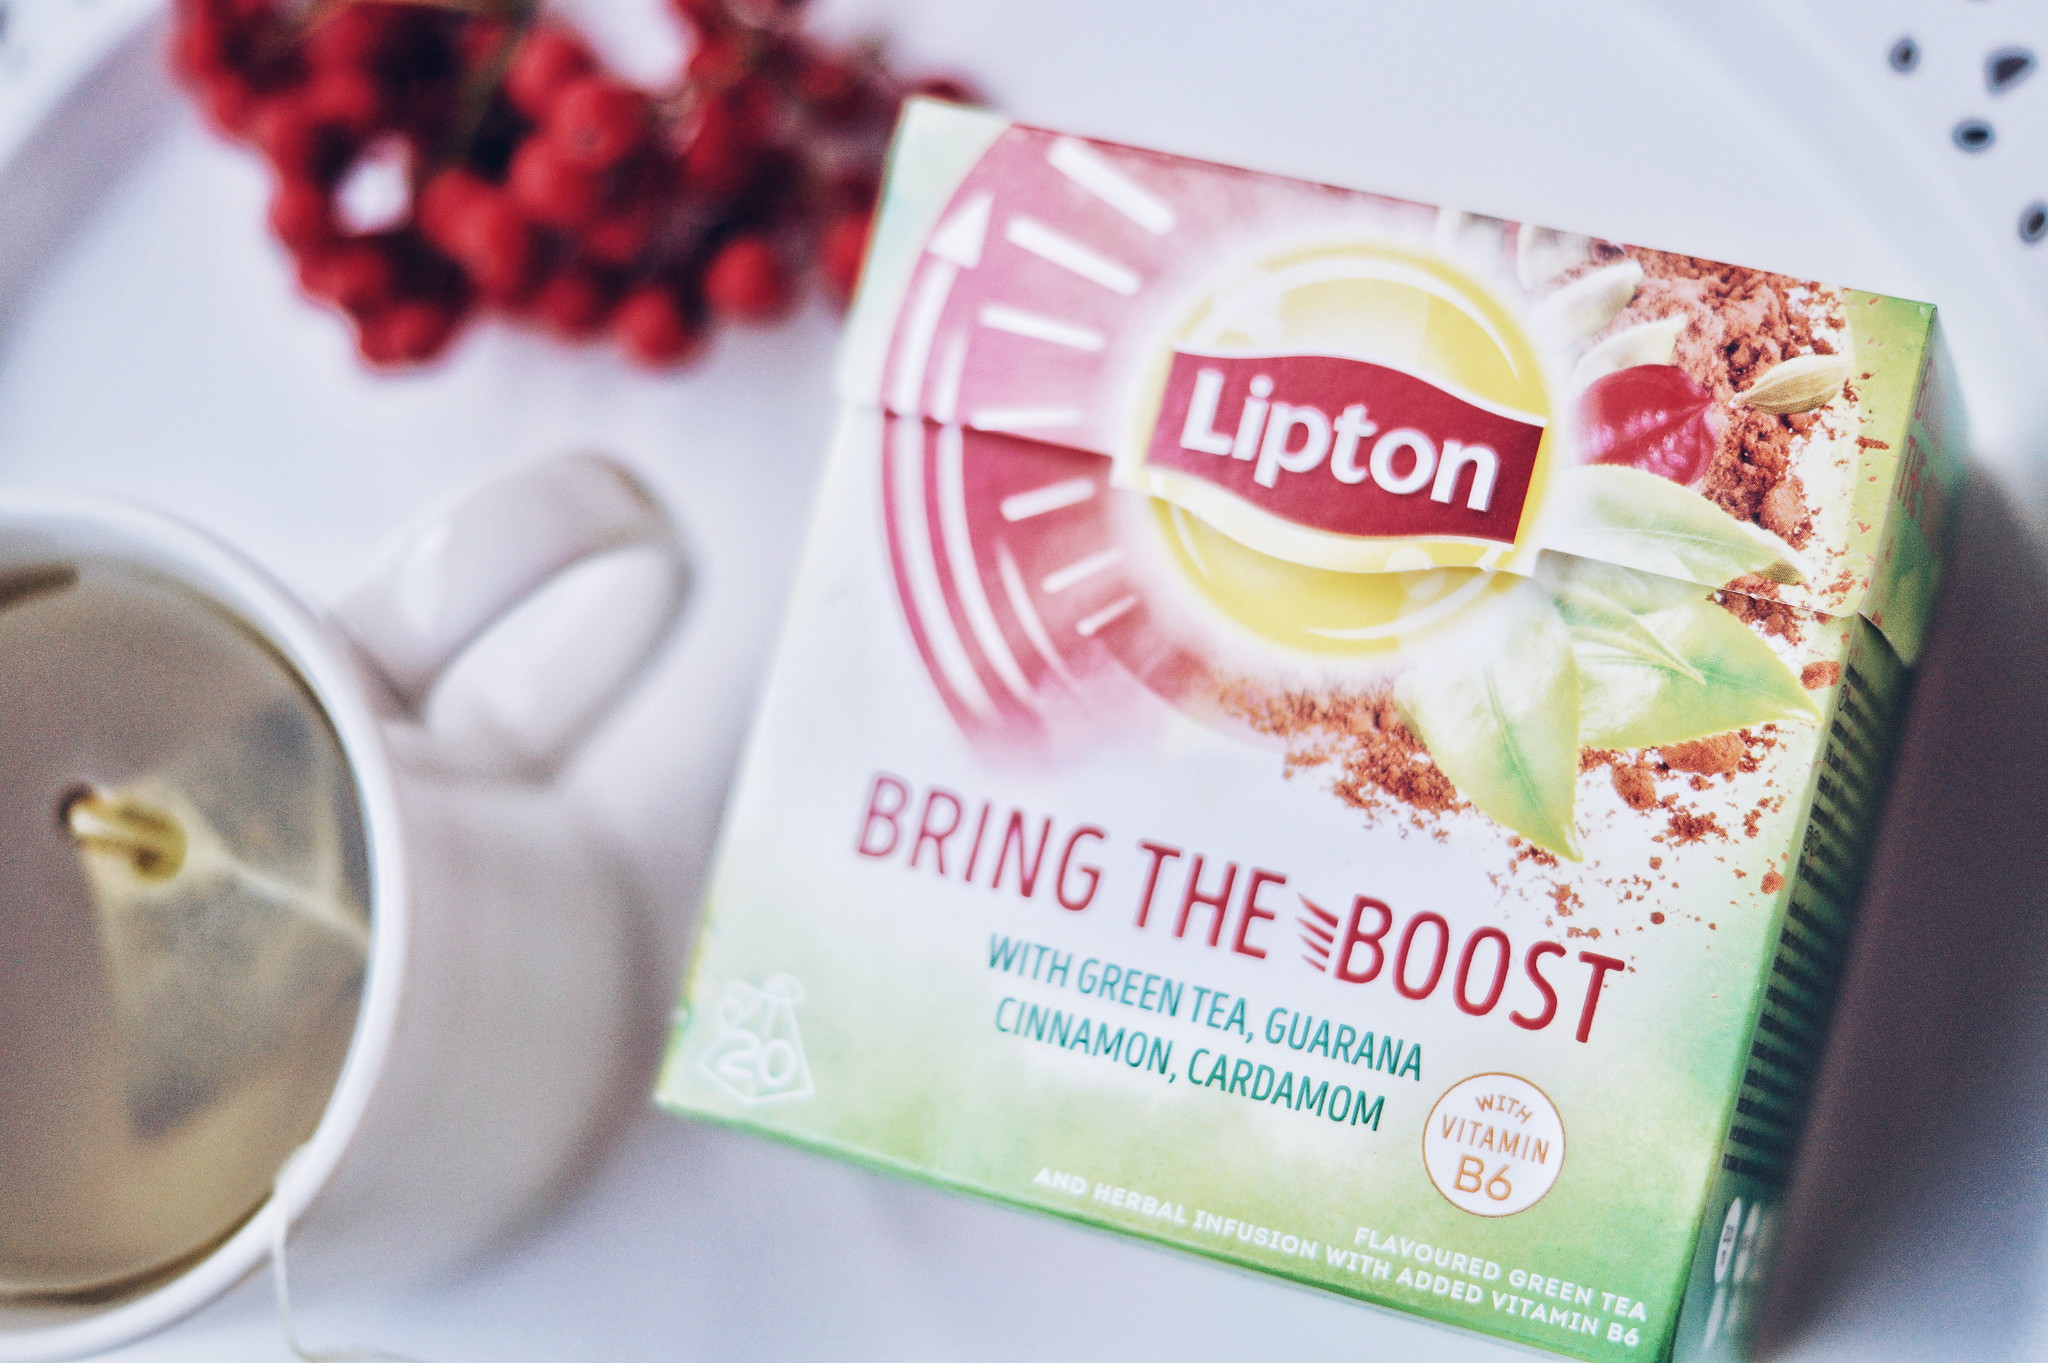 bring-the-boost-lipton